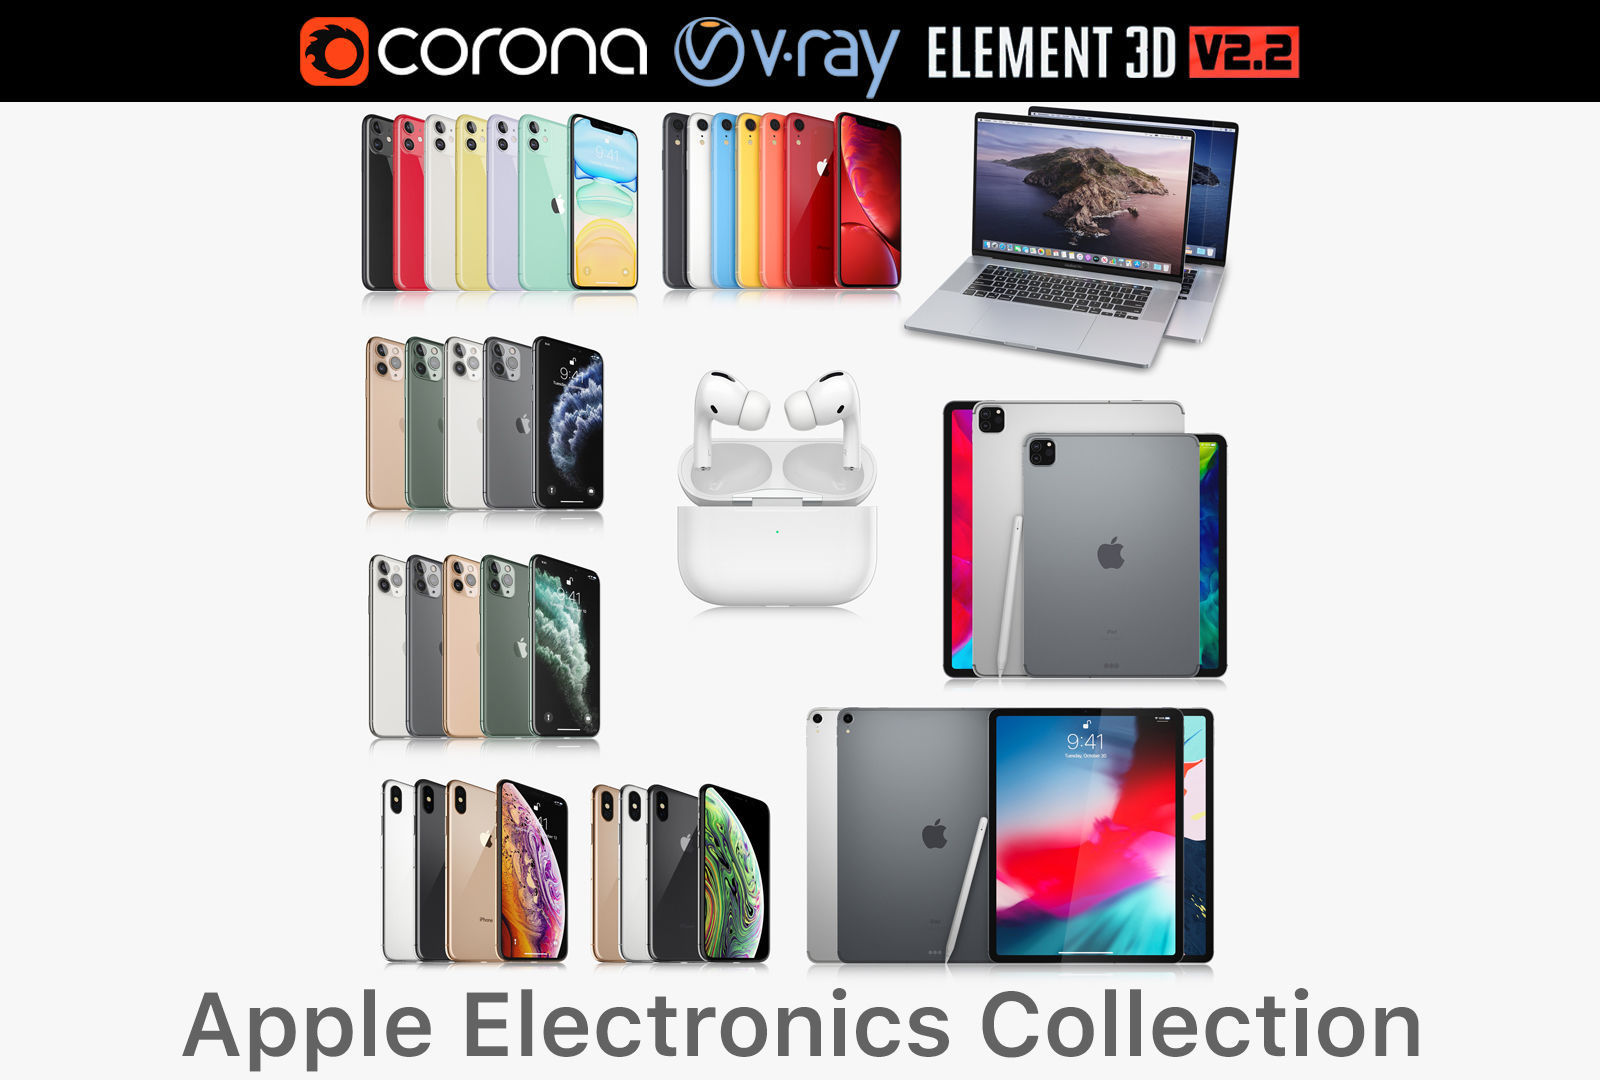 Apple Electronics Collection